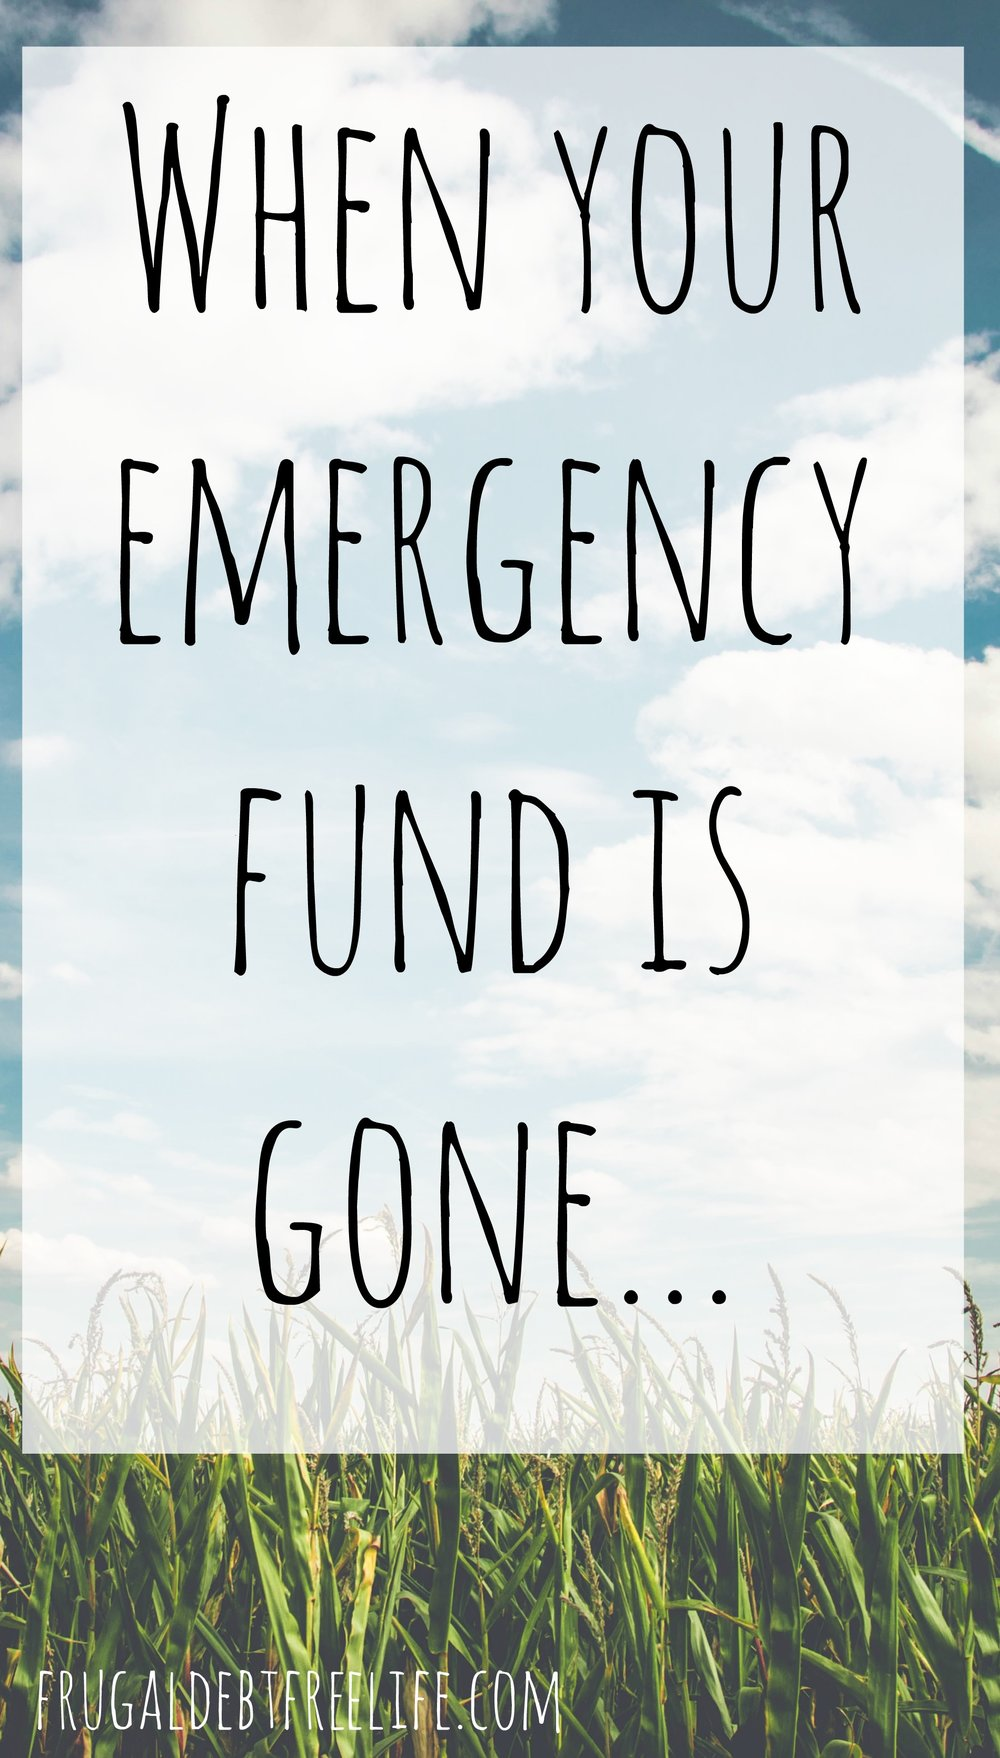 When your emergency fund is gone... .jpg